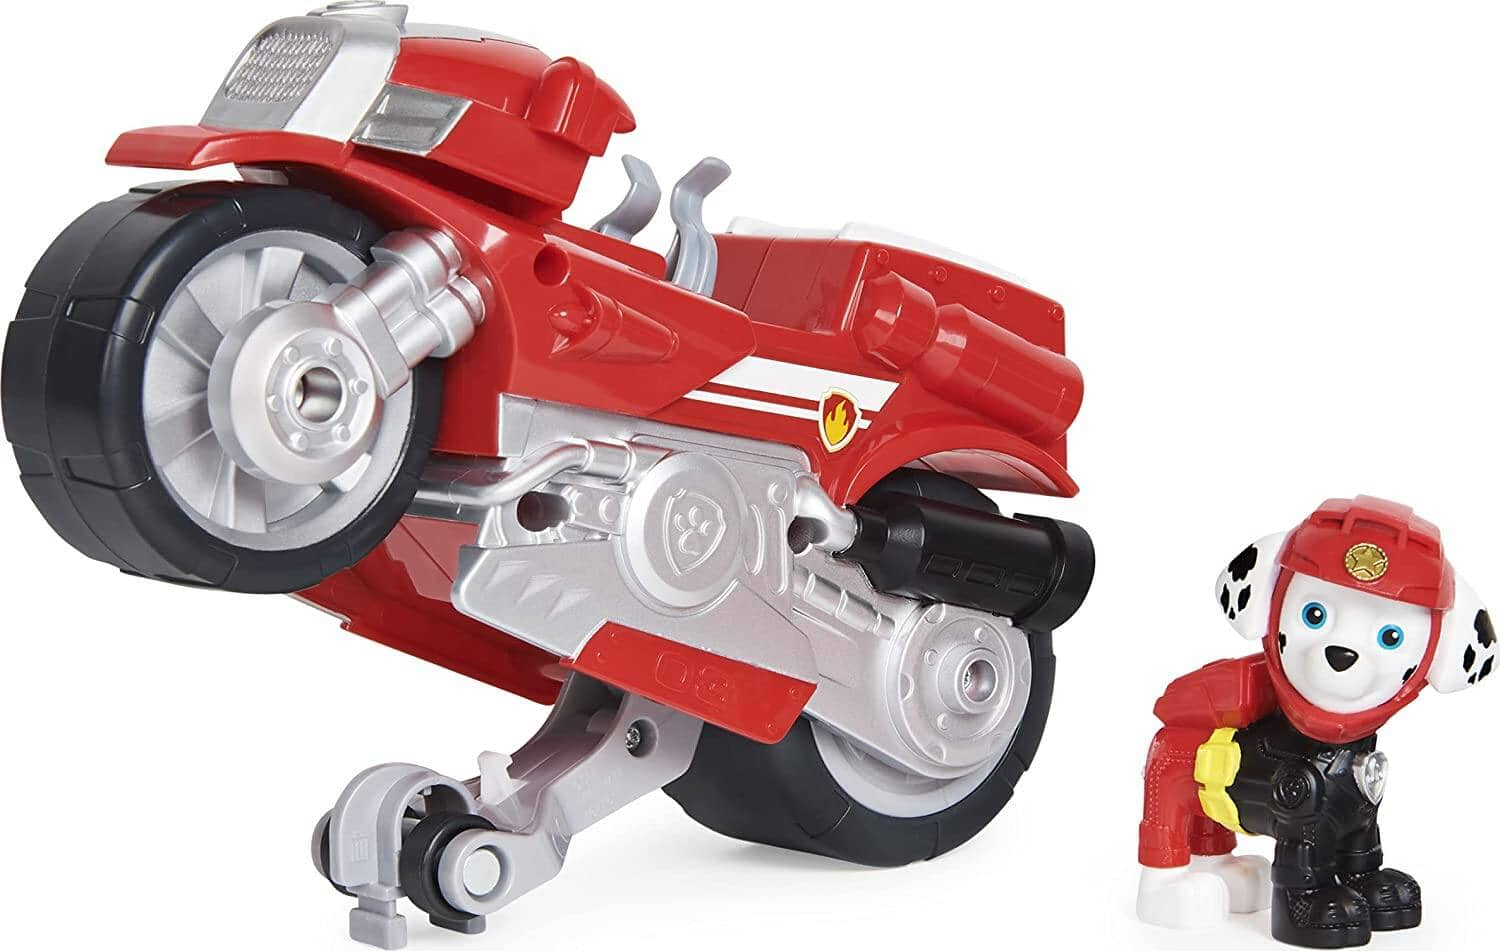 Paw Patrol Moto Pups Marshall's Deluxe Pull Back Motorcycle w/ Wheelie Feature and Figurine $6 + Free S&H w/ Prime or $25+